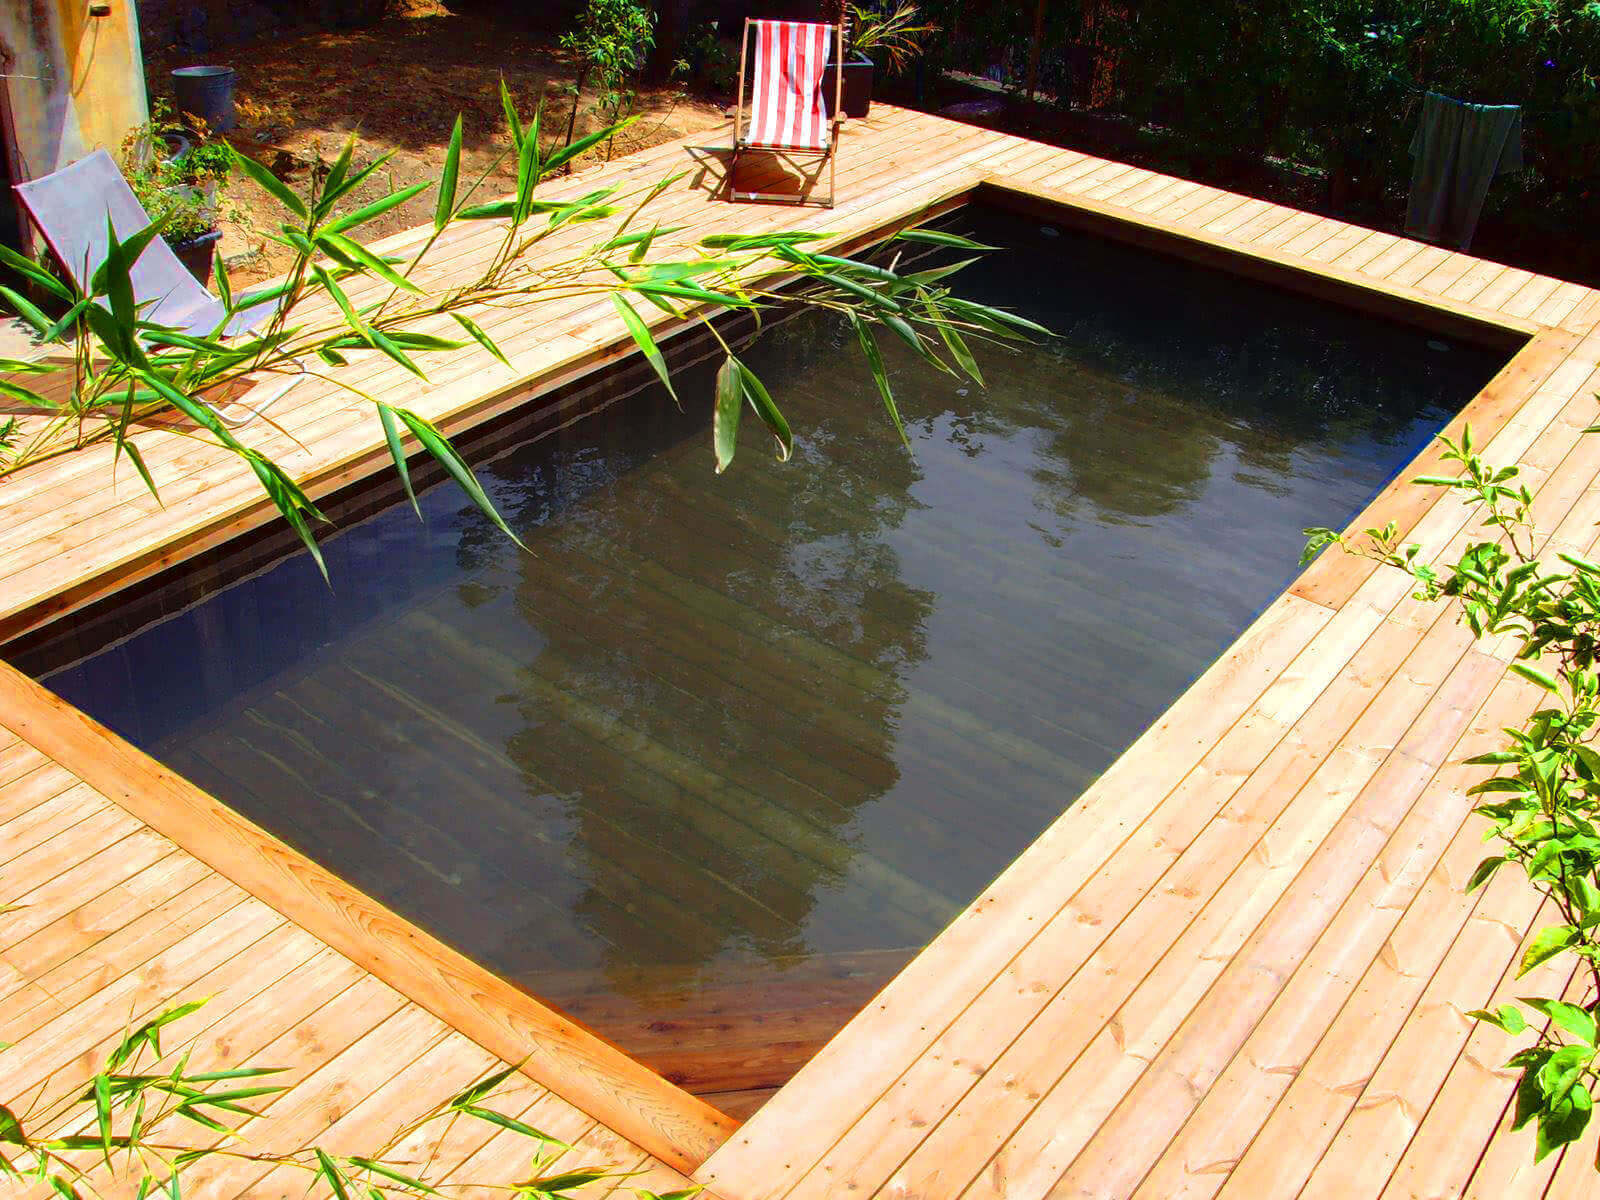 Piscine hors sol enterrable piscine semi enterrable for Enterrer une piscine bois